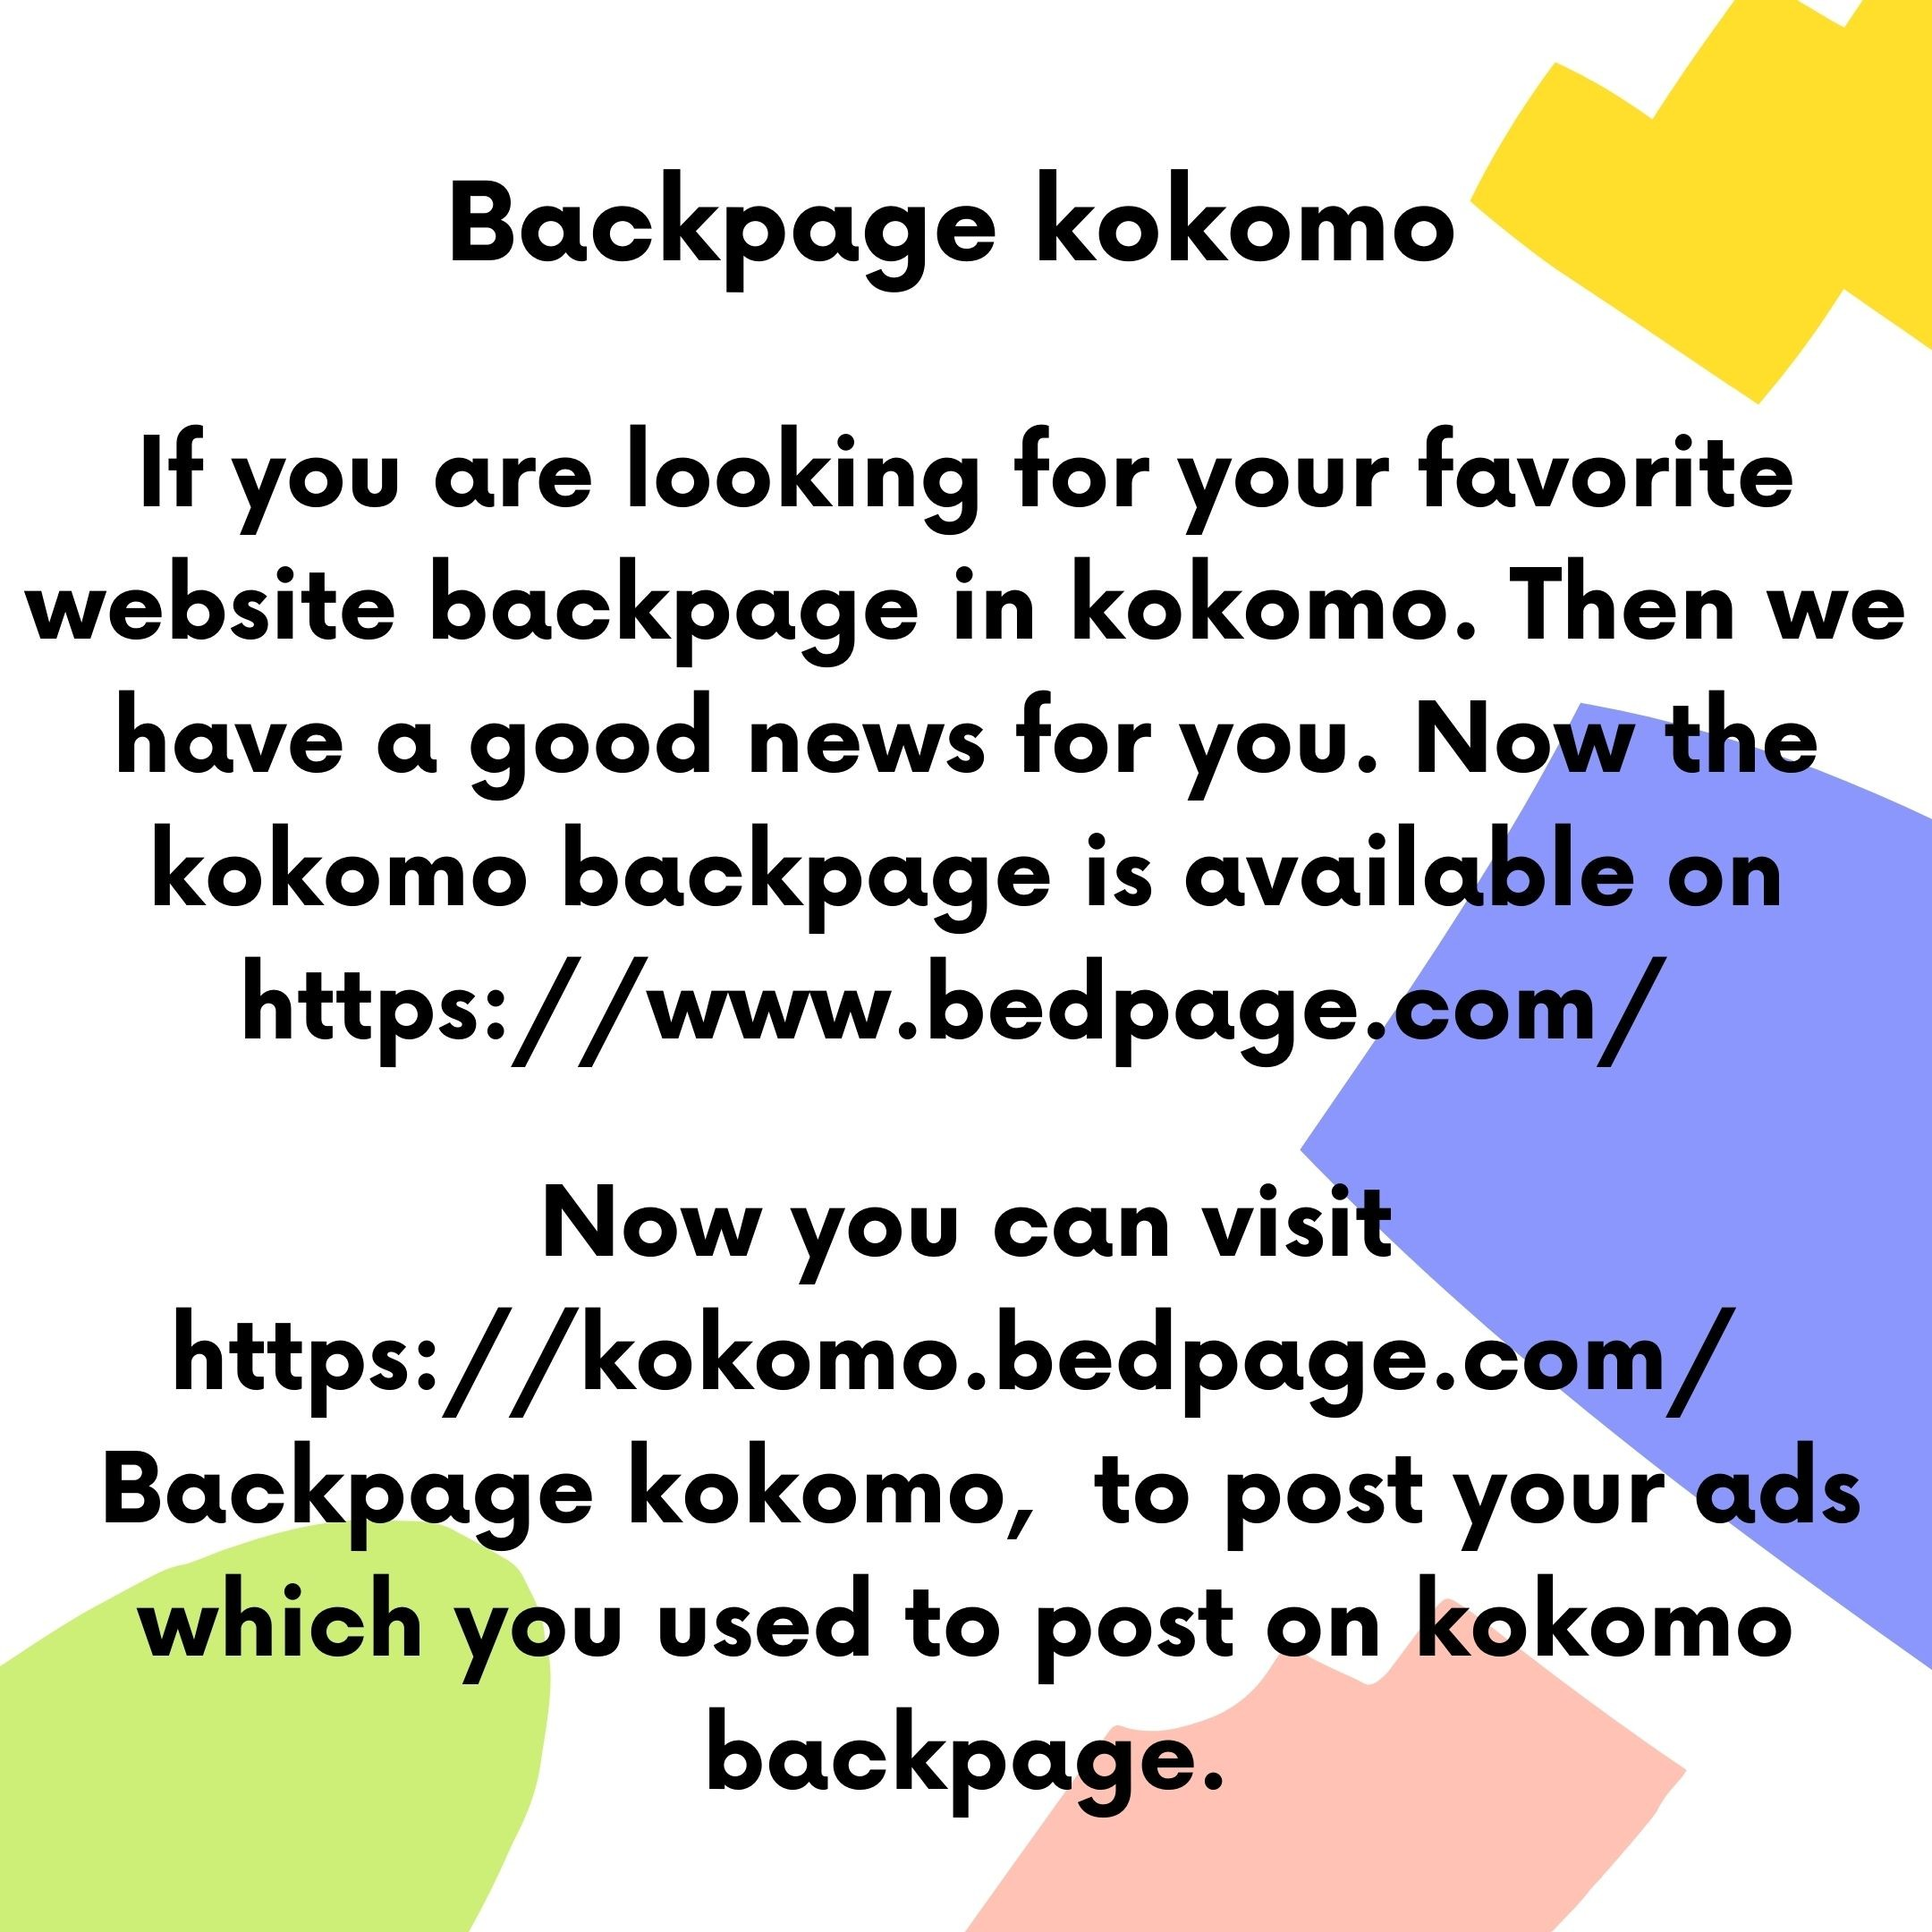 Backpage kokomo